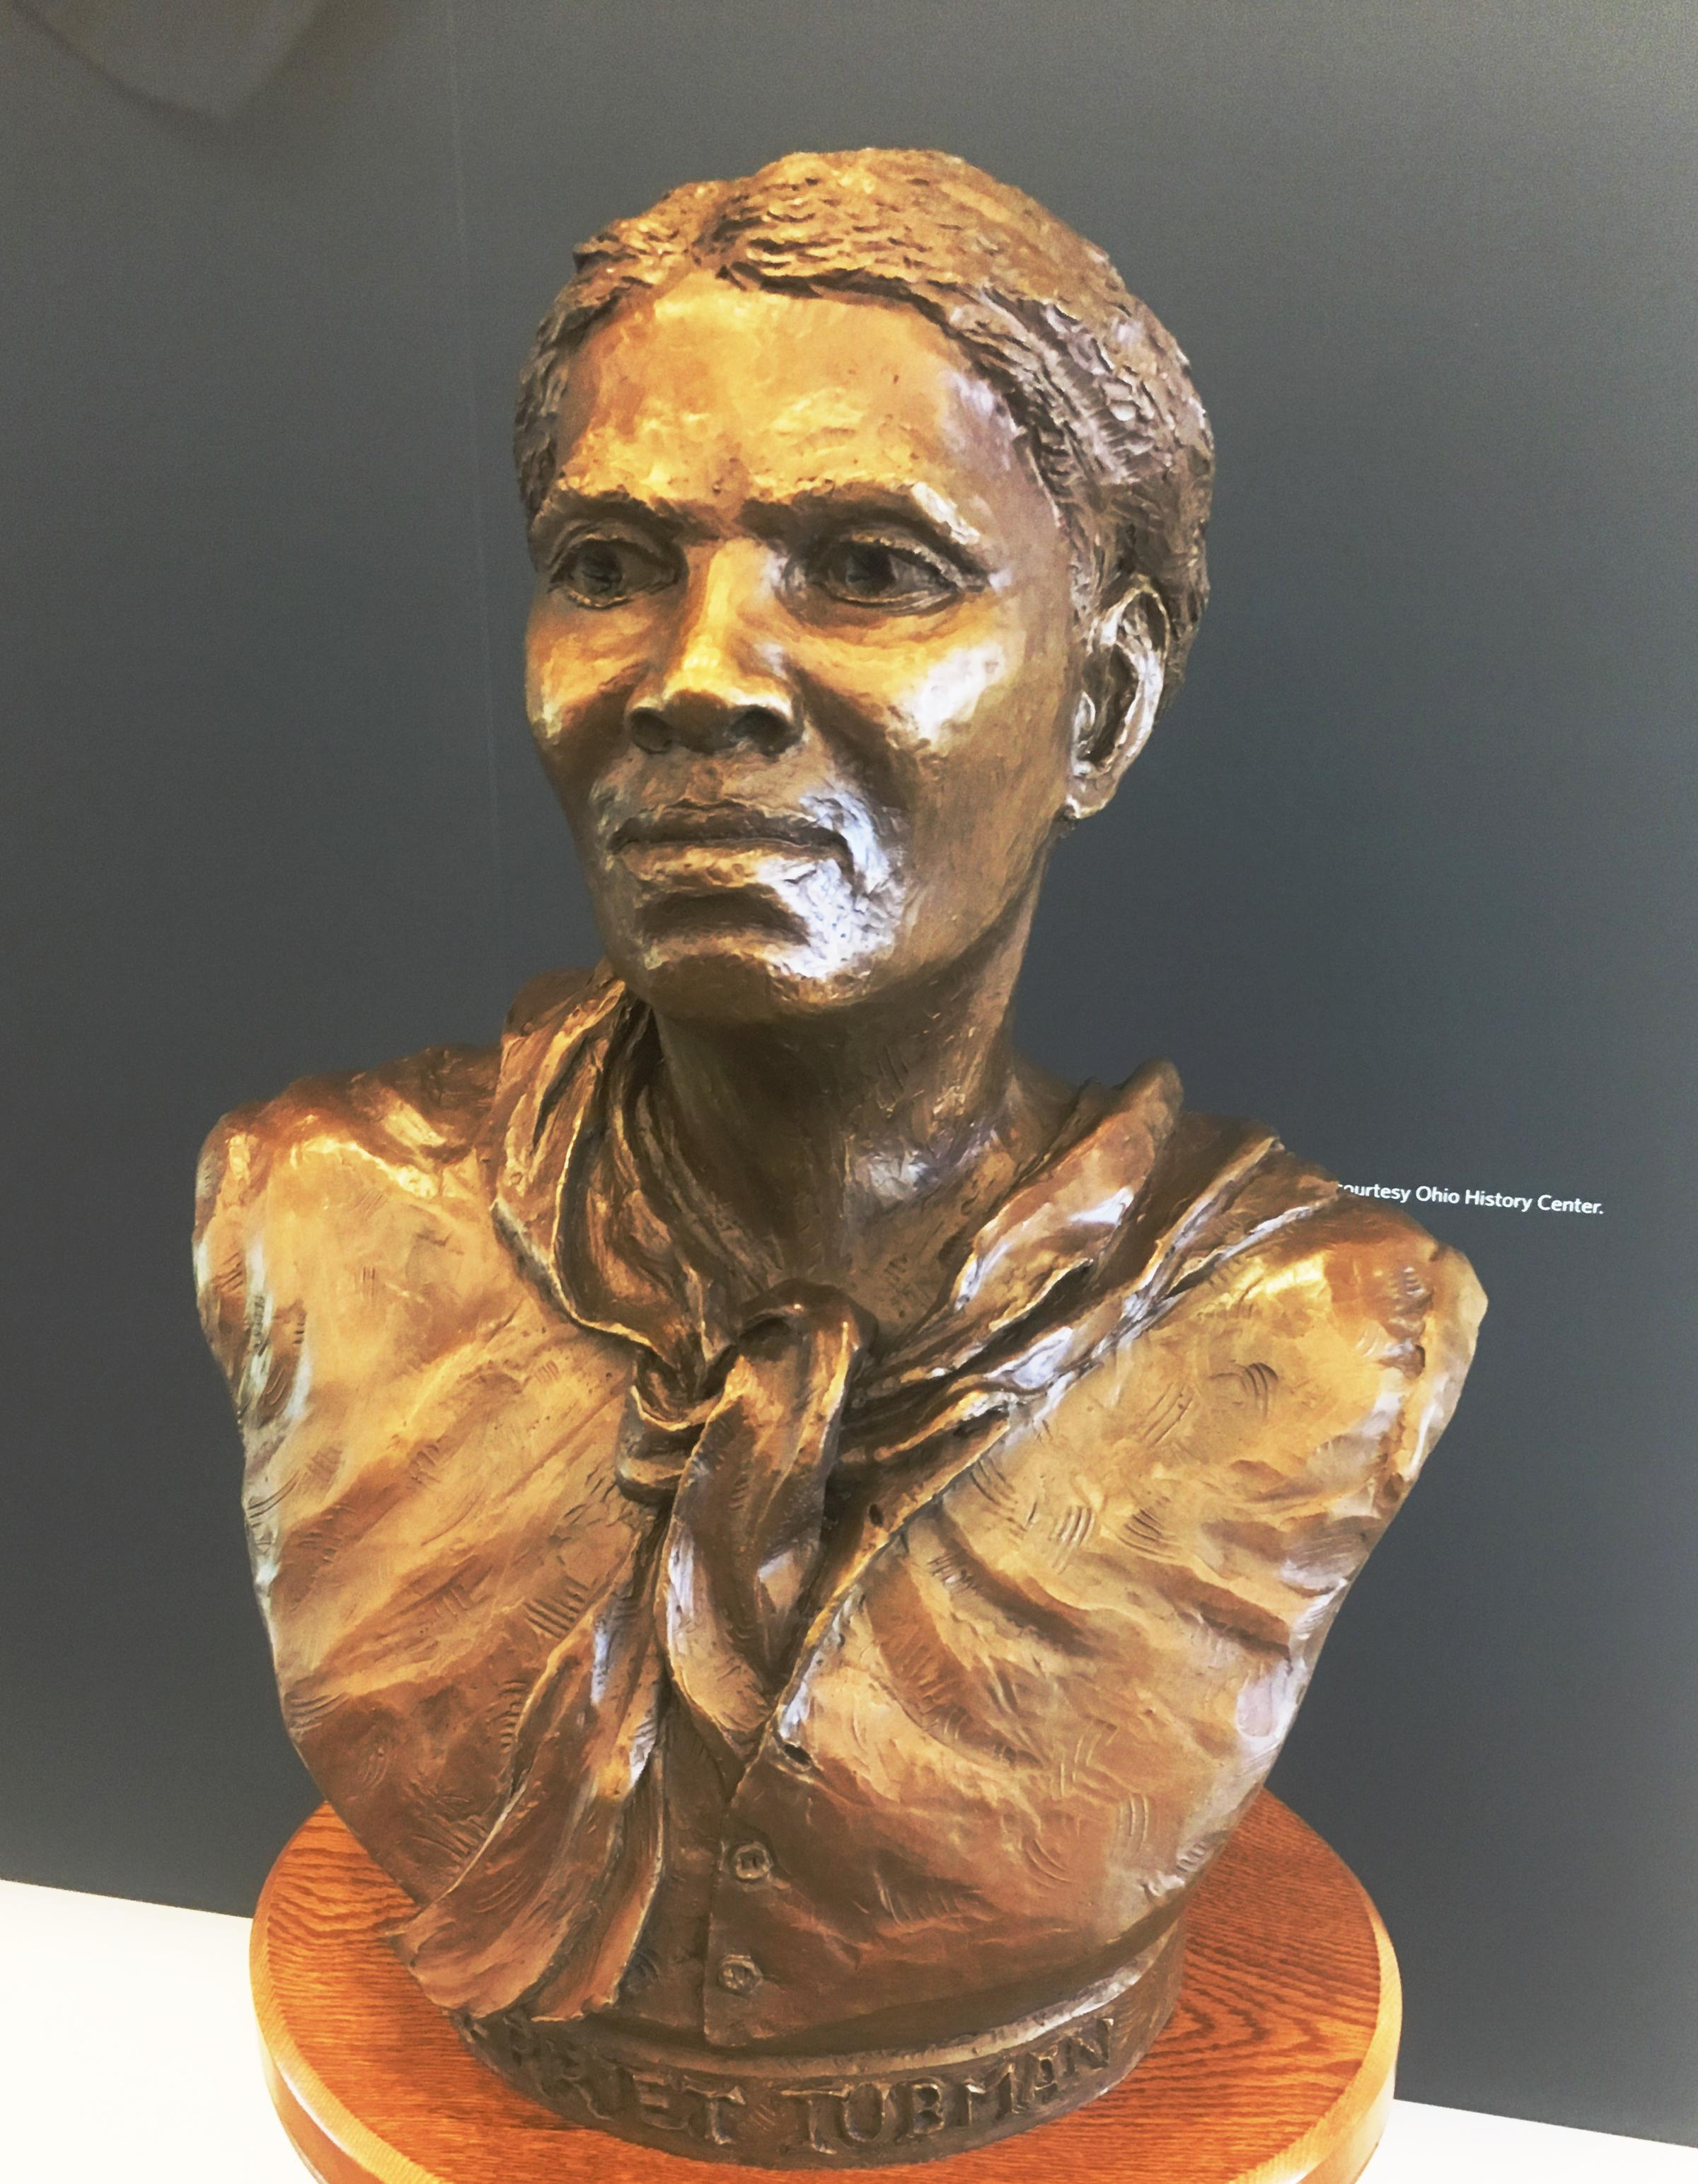 Tubman's Life and the New Underground Railroad Visitors Center